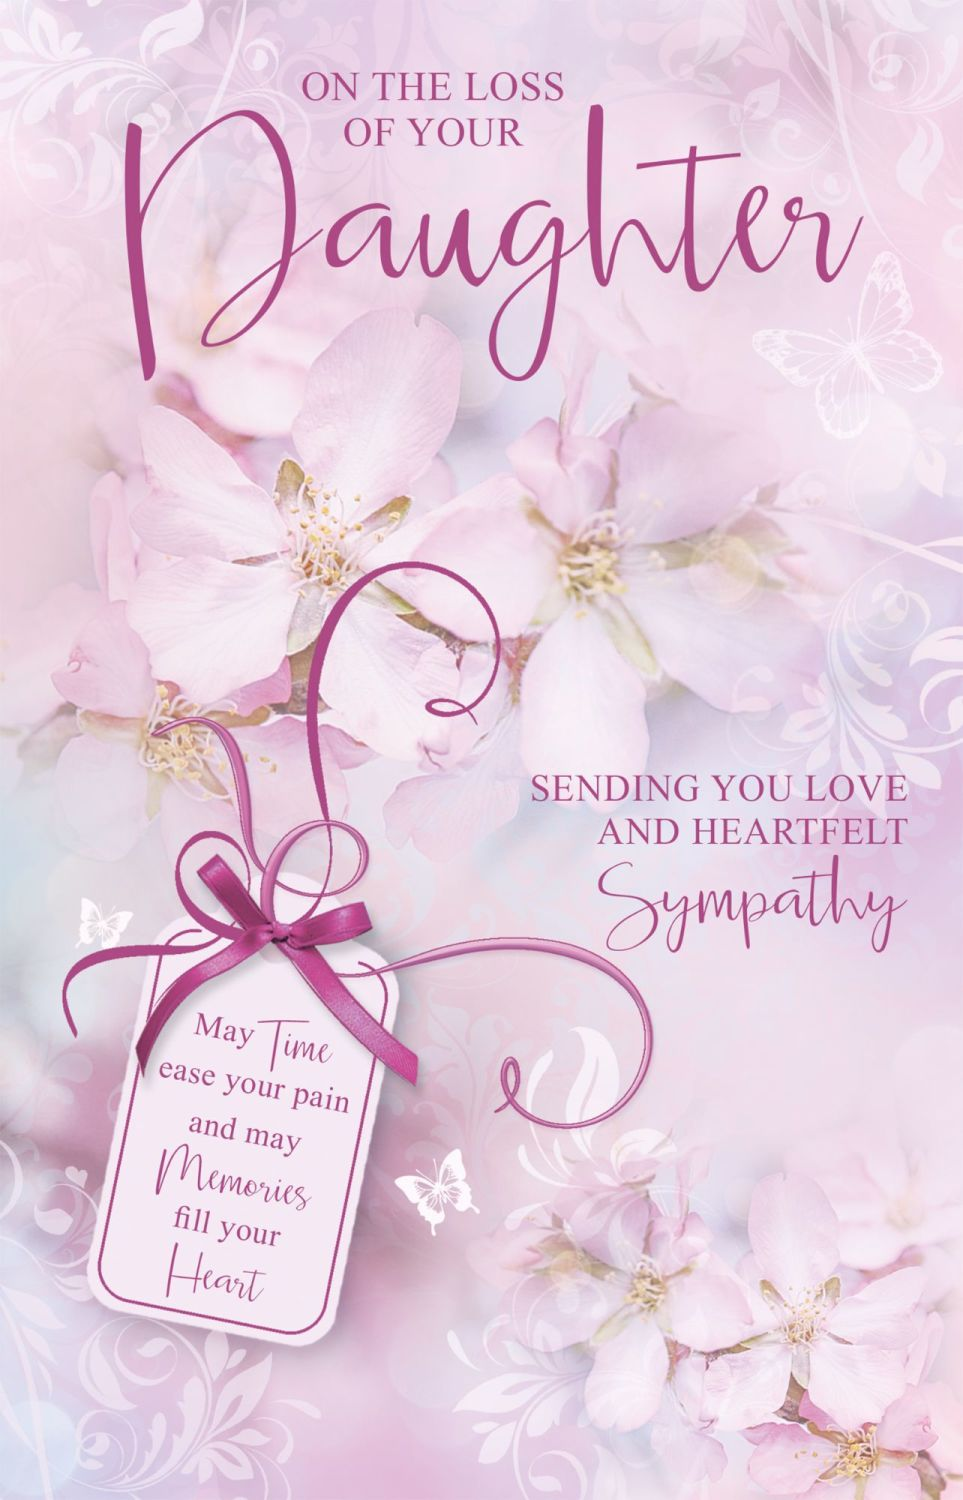 With Heartfelt Sympathy Card -  Fill Your HEART - LOSS Of DAUGHTER Cards -